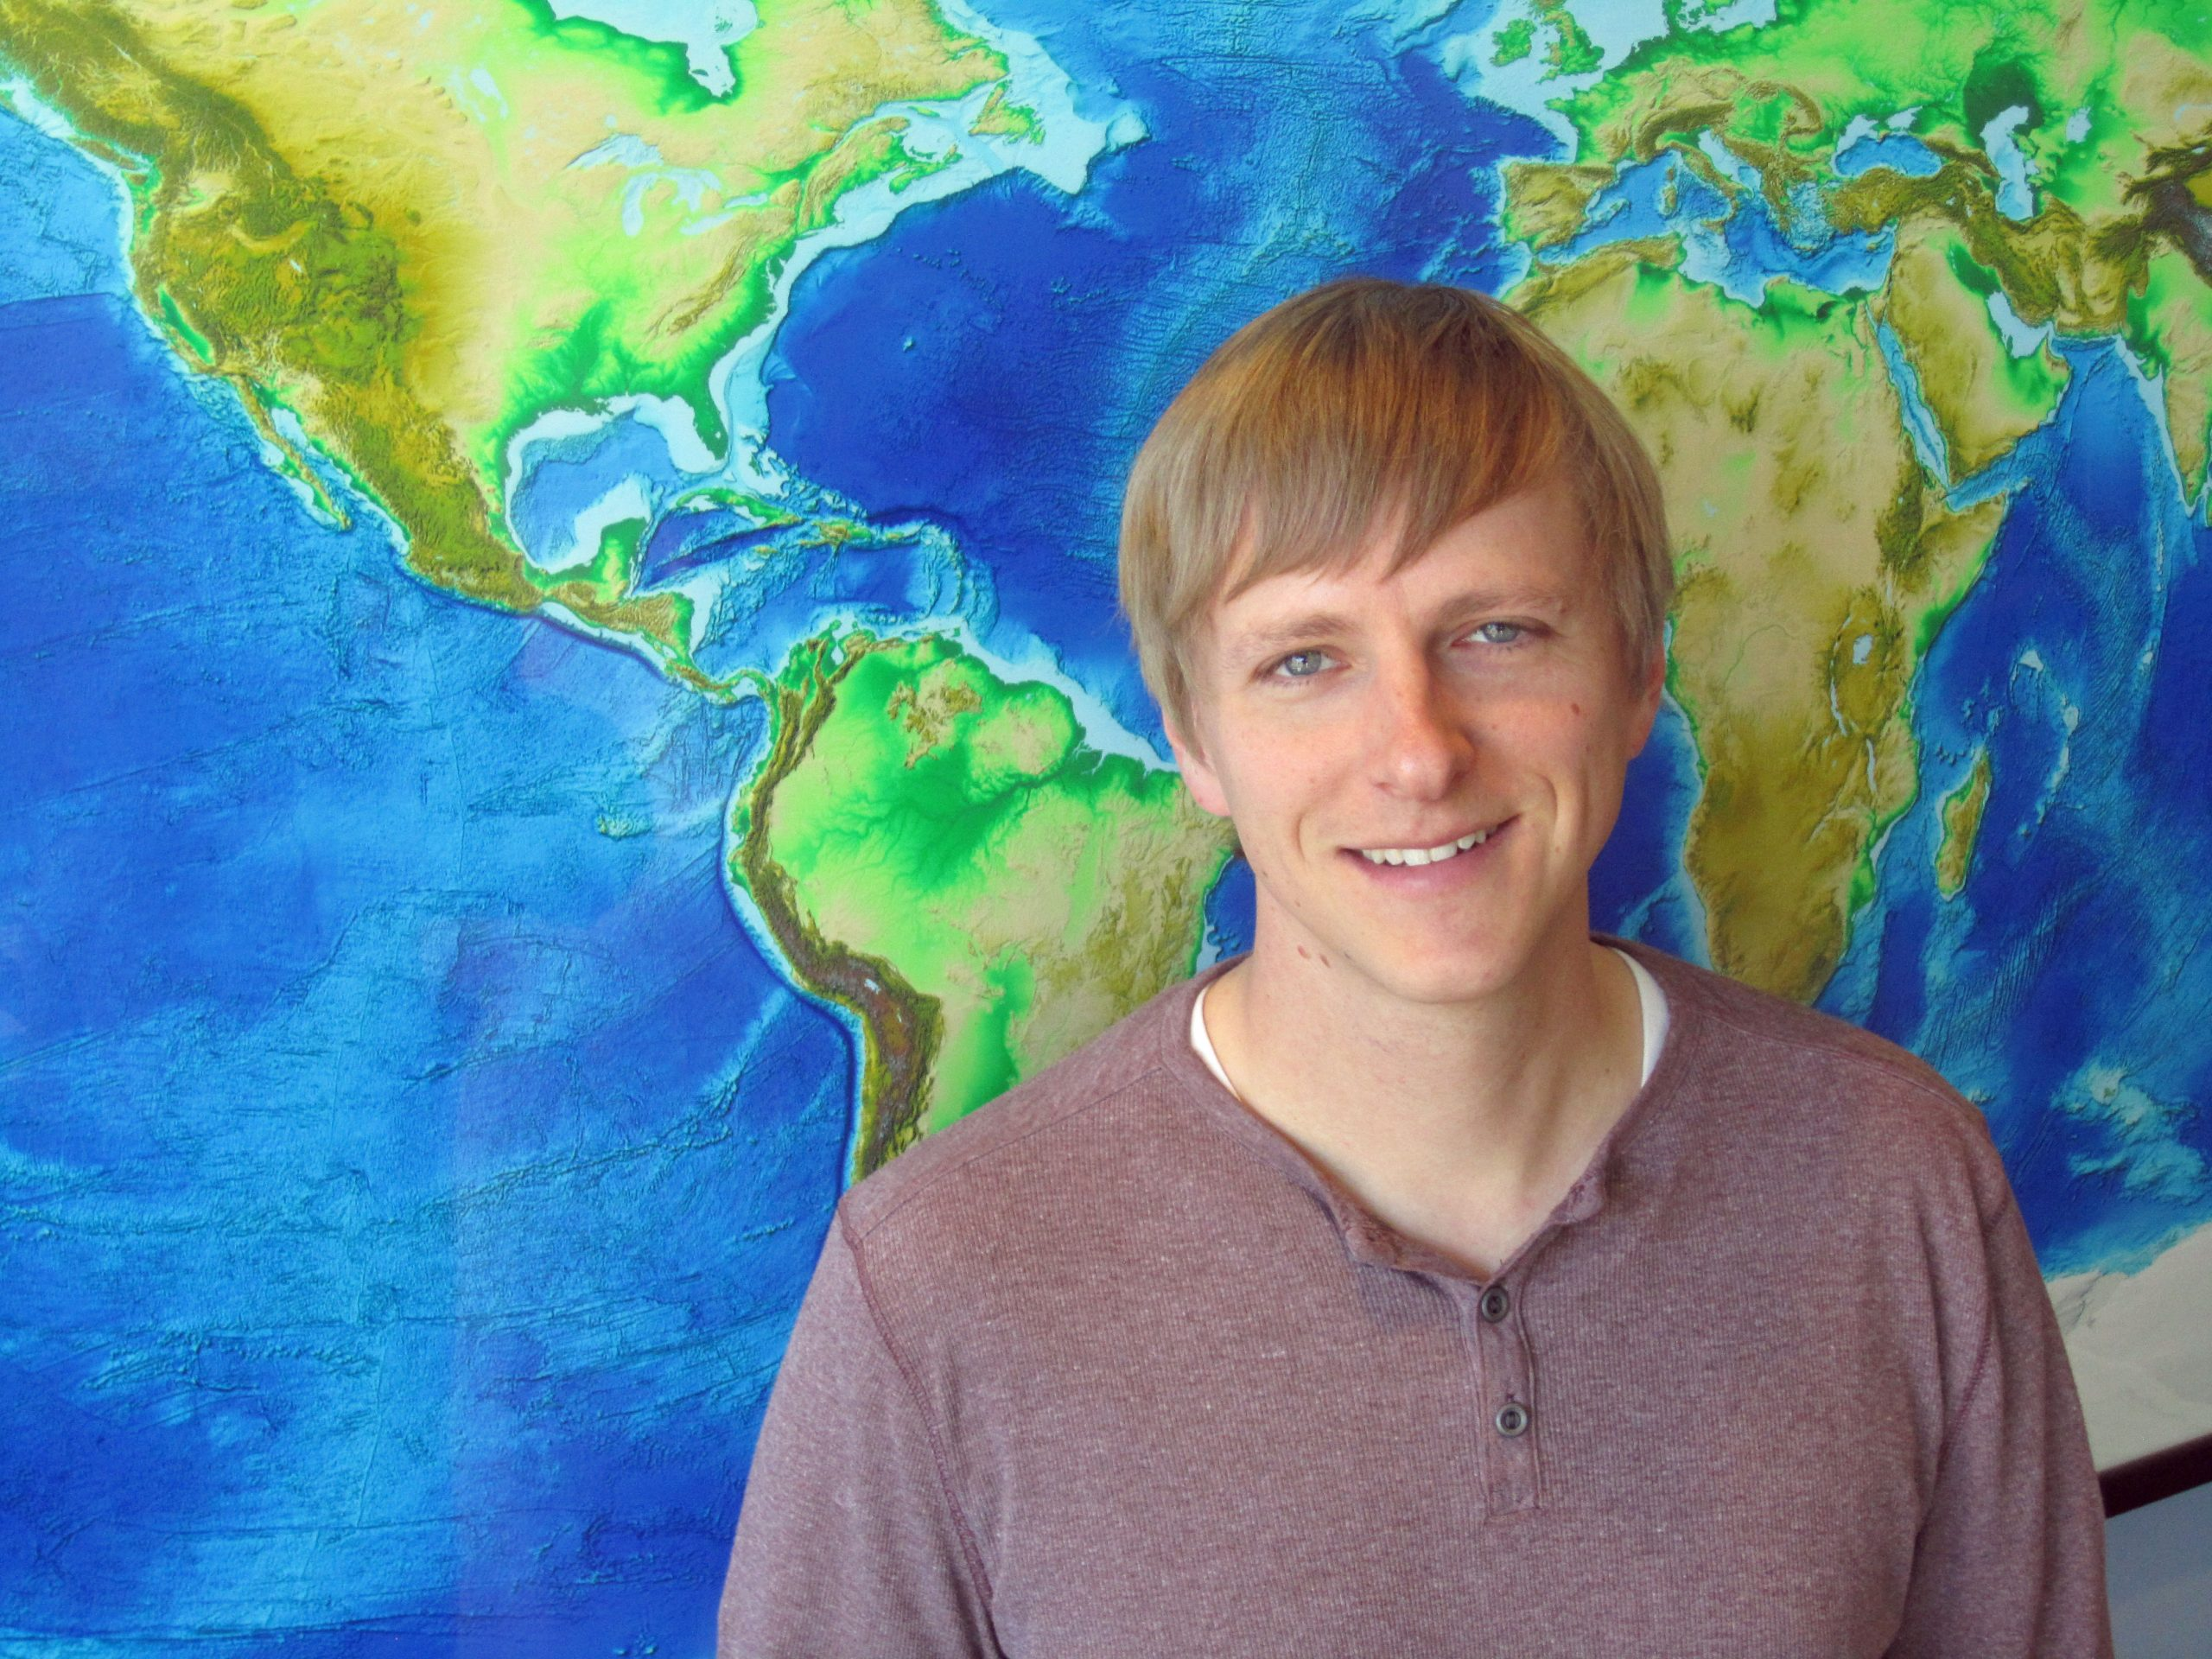 University of Utah geochemist Gabe Bowen led a new study, published in Nature Communications, showing that the curvy jet stream pattern that brought mild weather to western North America and intense cold to the eastern states this past winter has become more dominant during the past 4,000 years than it was from 8,000 to 4,000 years ago. The study suggests global warming may aggravate the pattern, meaning such severe winter weather extremes may be worse in the future.